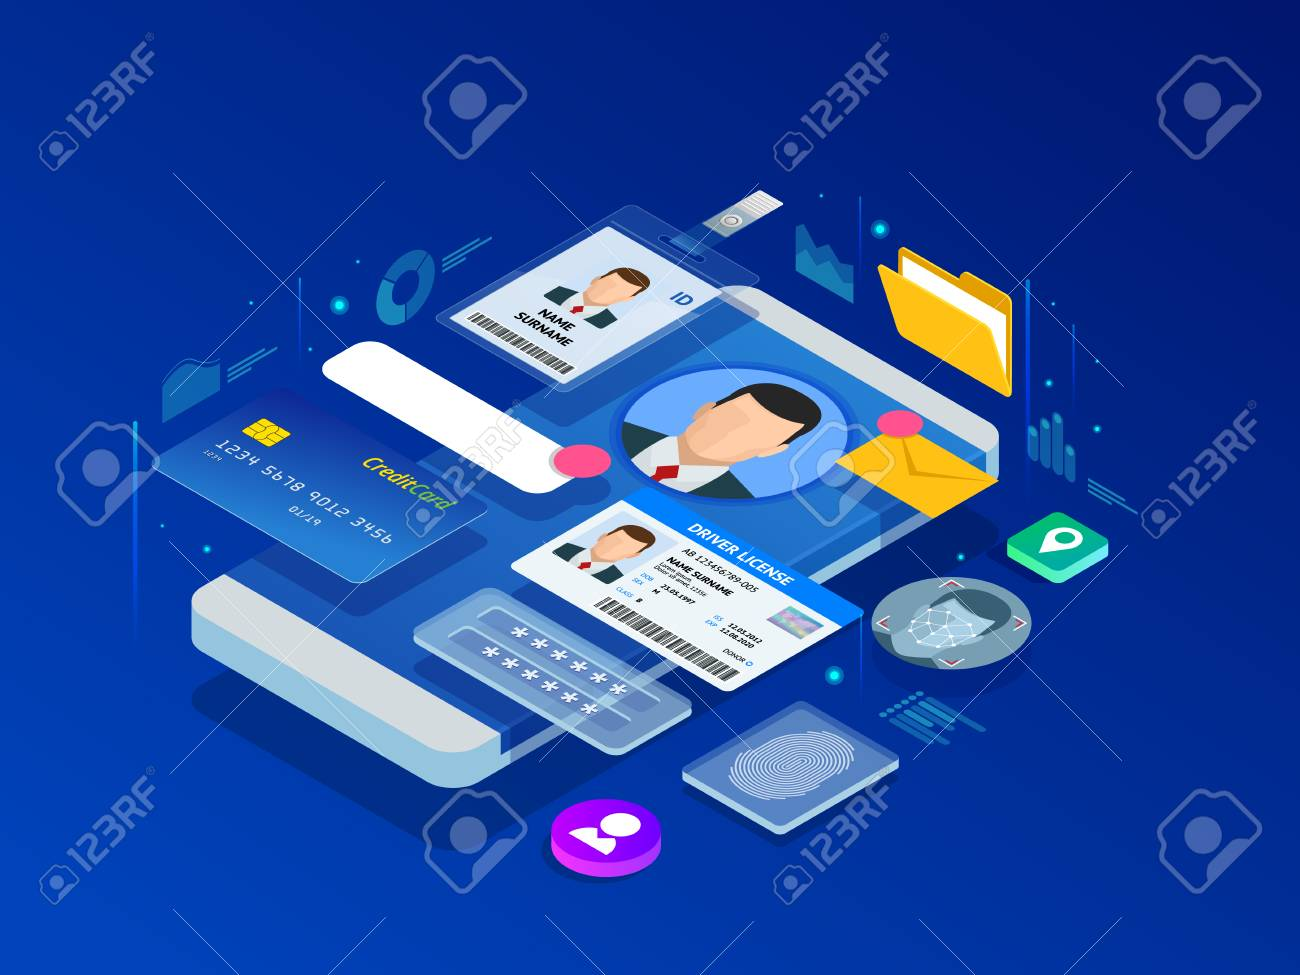 Isometric Personal Data Information App, Identity Private Concept. Digital data Secure Banner. Biometrics technology vector illustration for personal identity recognition and access authentication. - 116760726